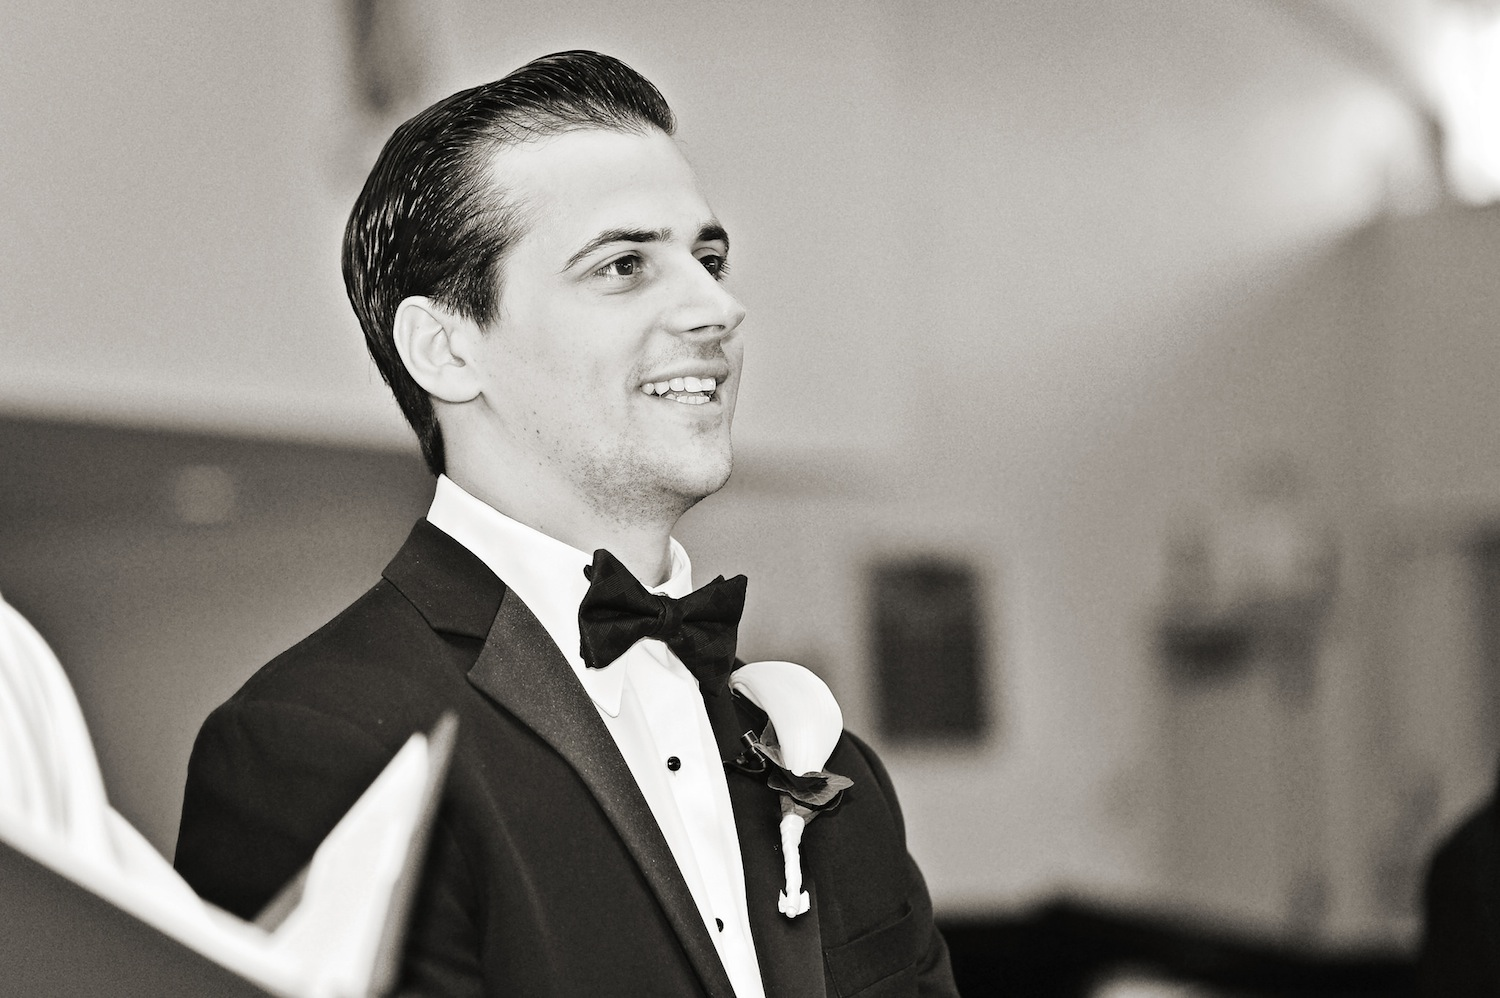 groom-wedding-photographers-nj-ny-live-picture-studios